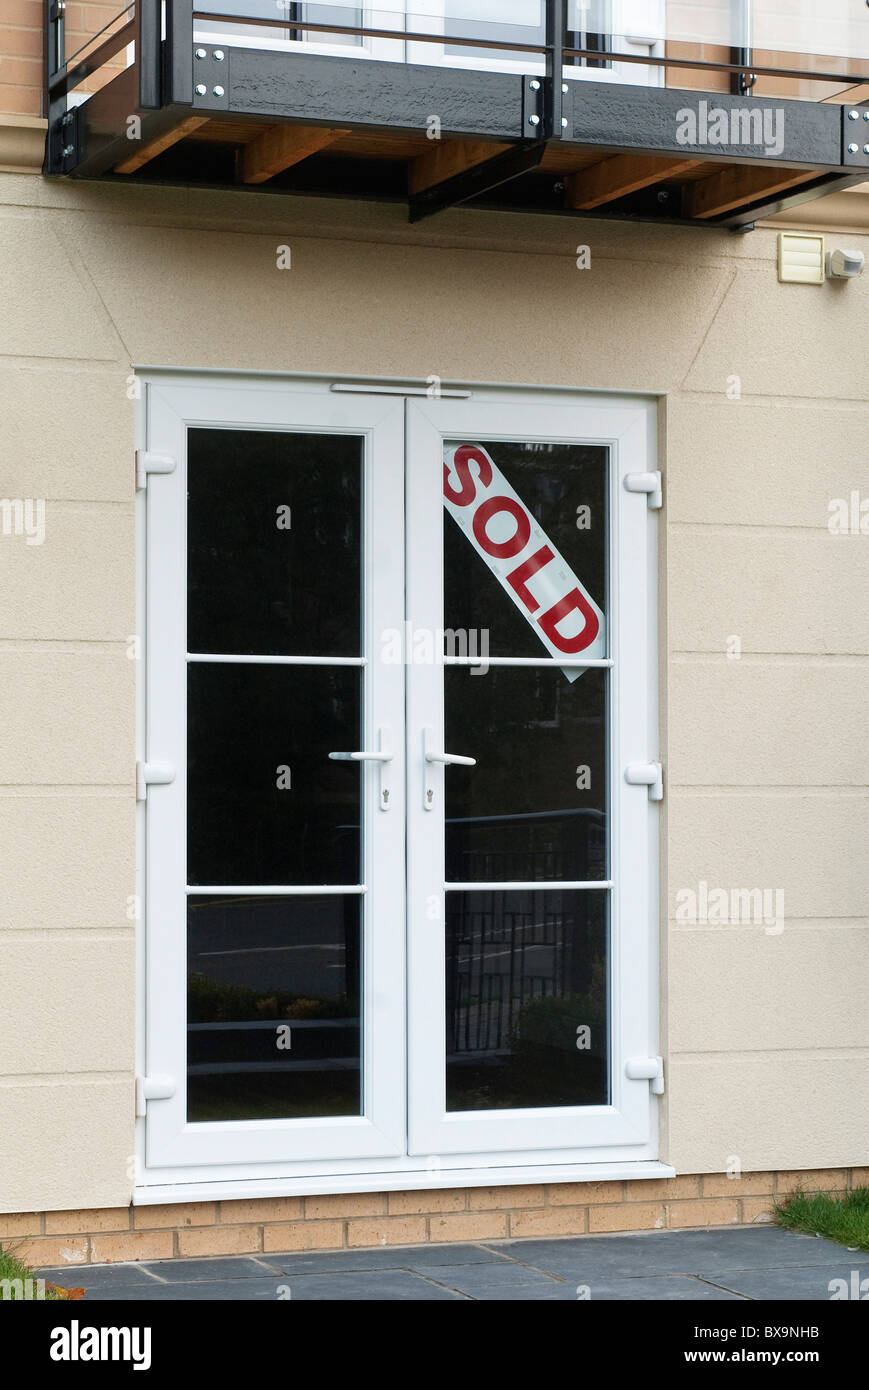 Pvc Door Stock Photos Pvc Door Stock Images Alamy